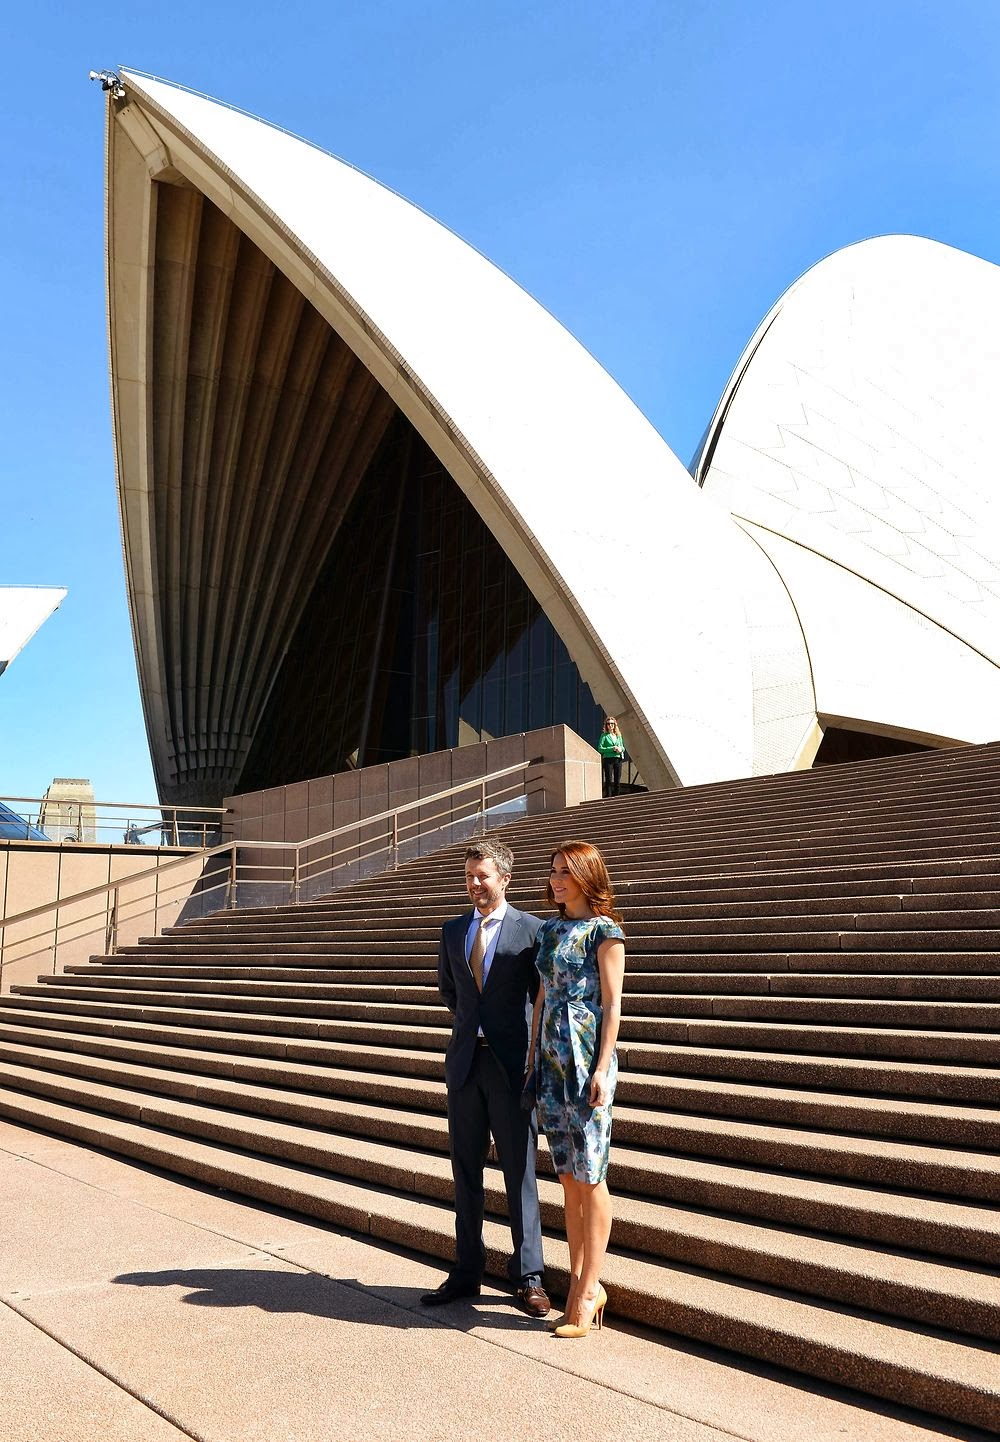 Fred+and+Mary+at+Sydney+Opera+House,+Oct+24th+2013.JPG